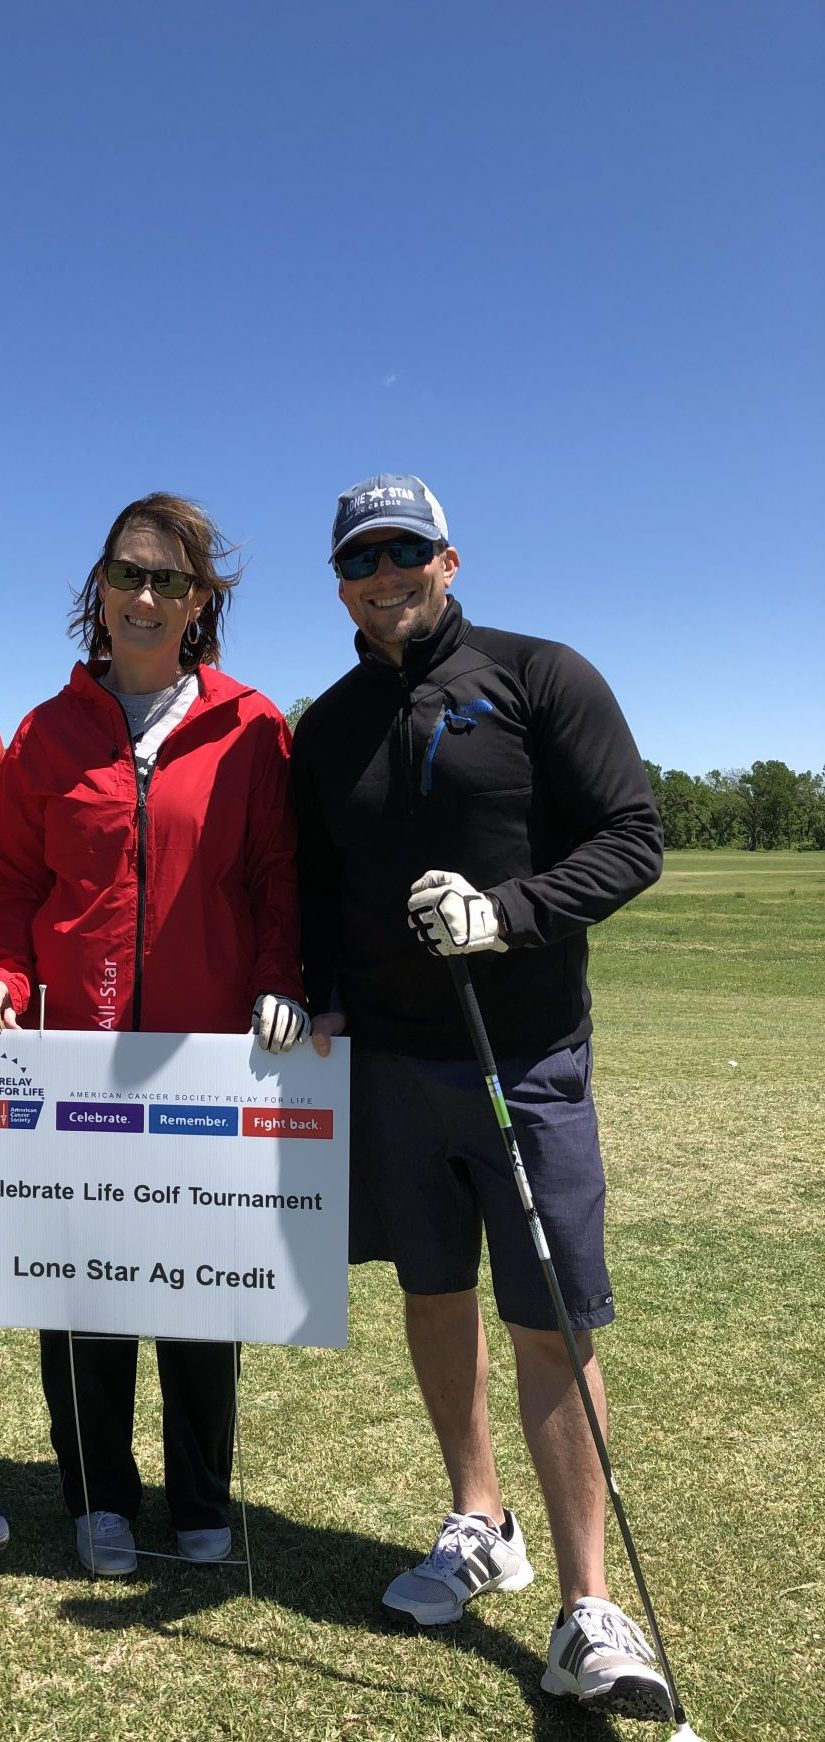 Lone Star Ag Credit, Stephenville Office President, Gerrit Schouten, at a golf tournament.